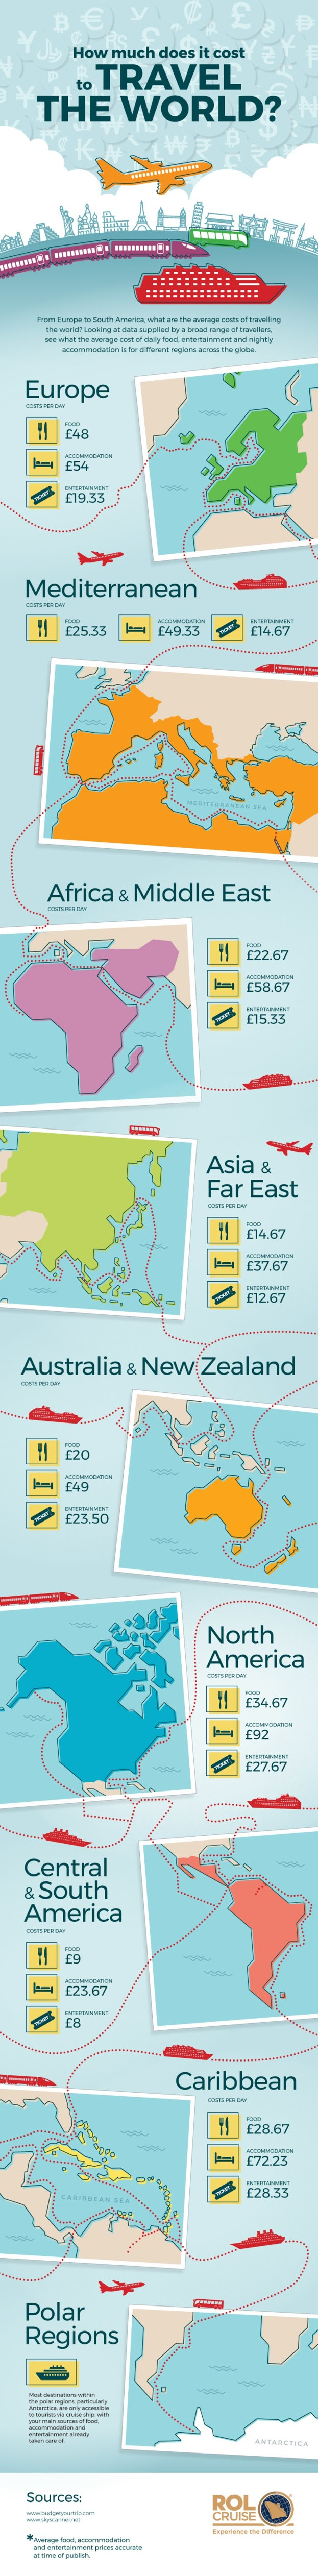 How much does it cost to travel the world? #infographic #Travel #Travel Cost #World